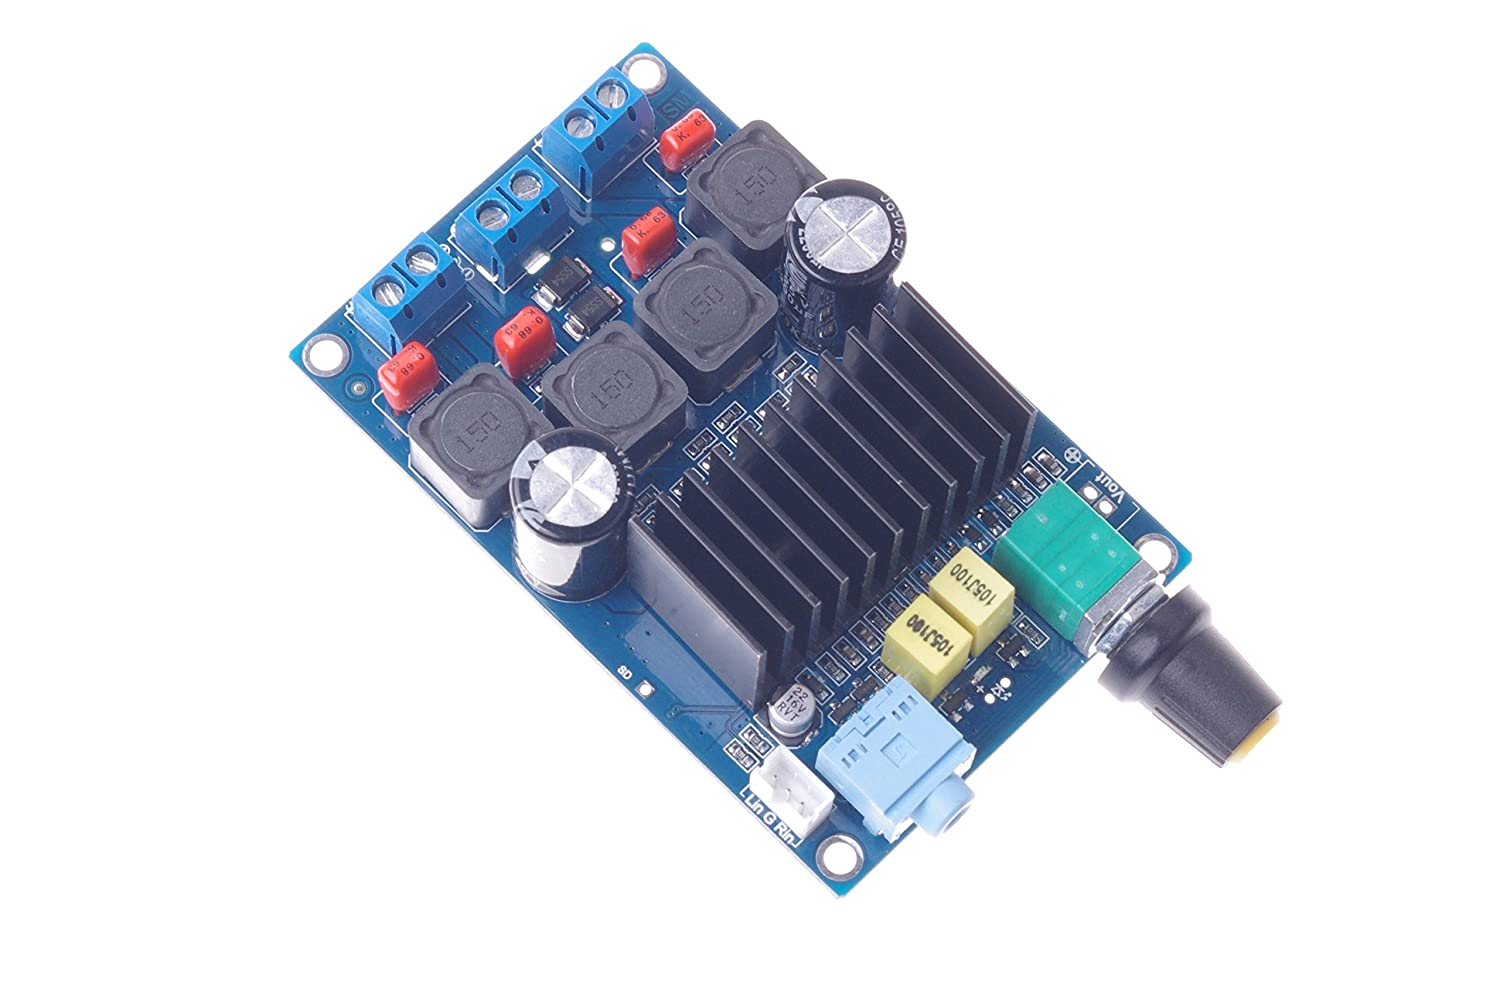 Amazon.com: SMAKNÂ TPA3116 Amplifier Board(50W+50W) D Class Amplifier Board: Electronics